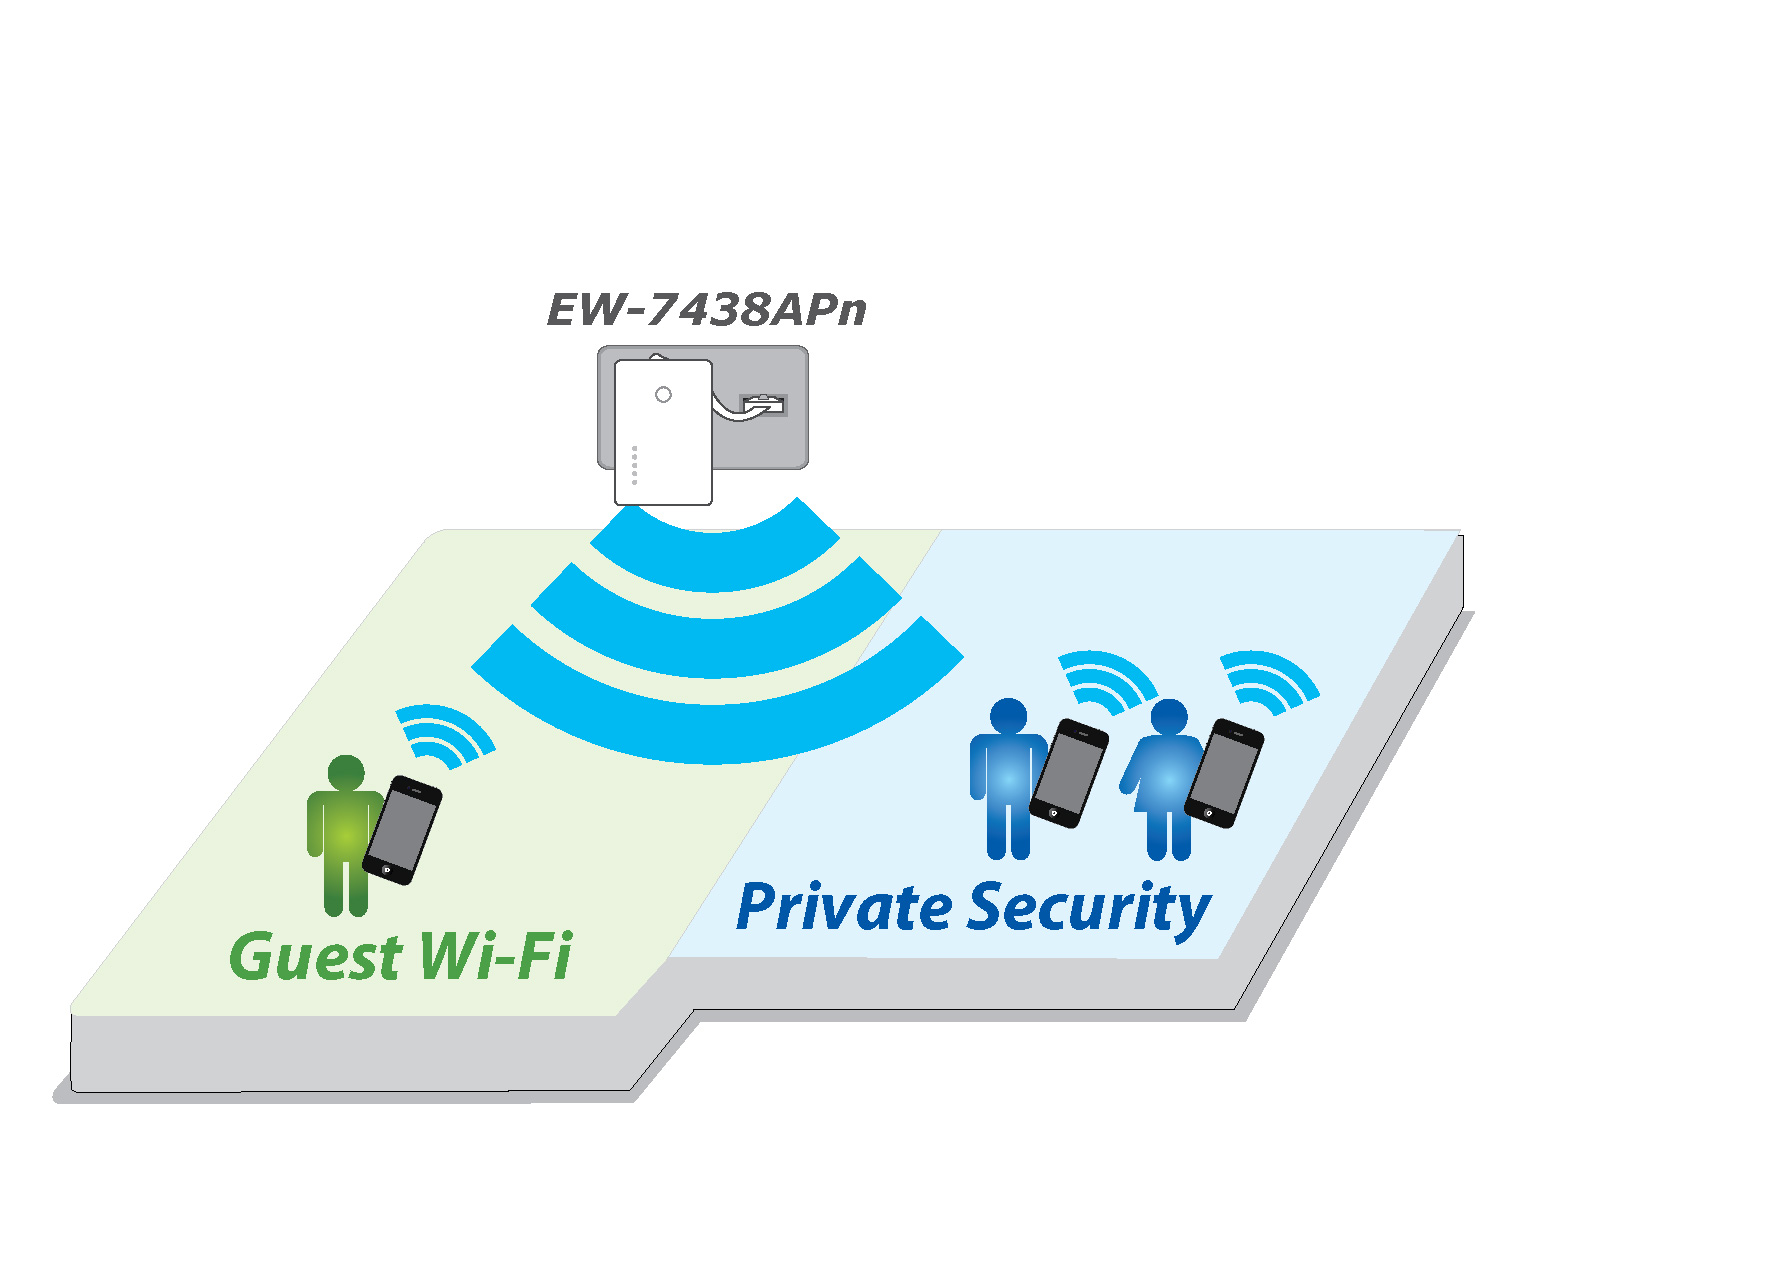 Edimax N300 Wall Plug Access Point EW-7438APn_private_guest_networks.jpg